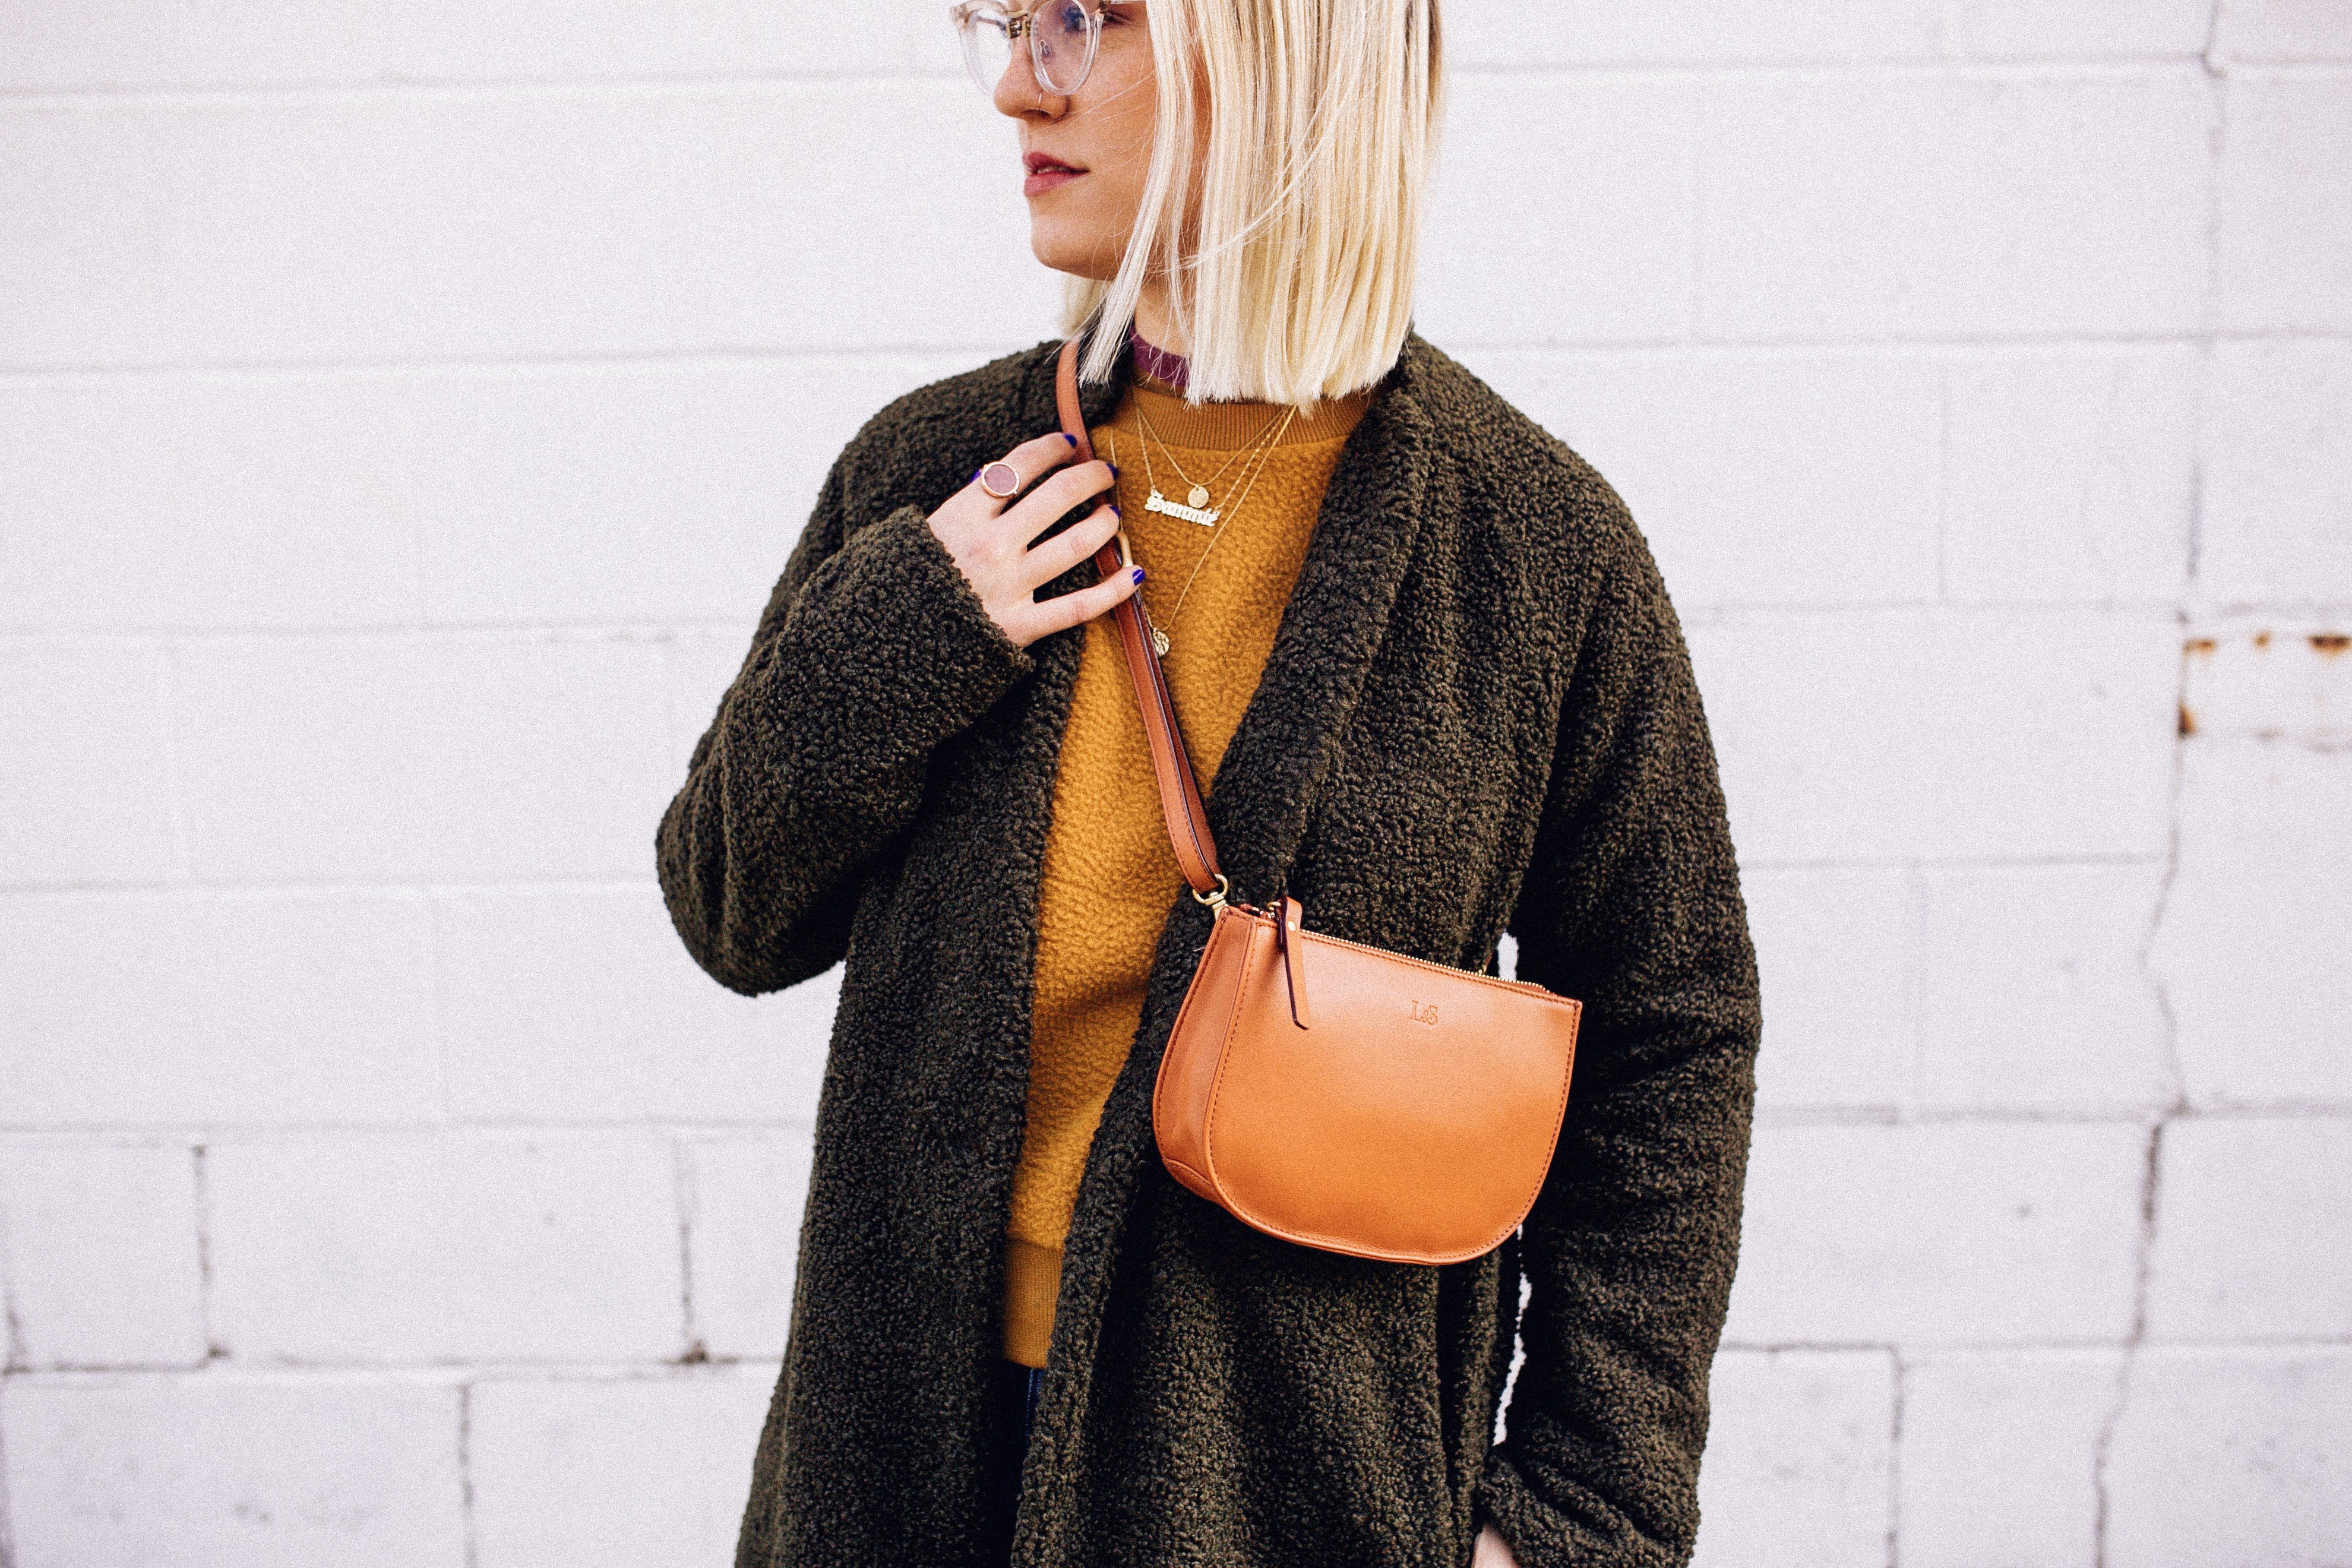 The Perfect Bags for the On-The-Go Gal